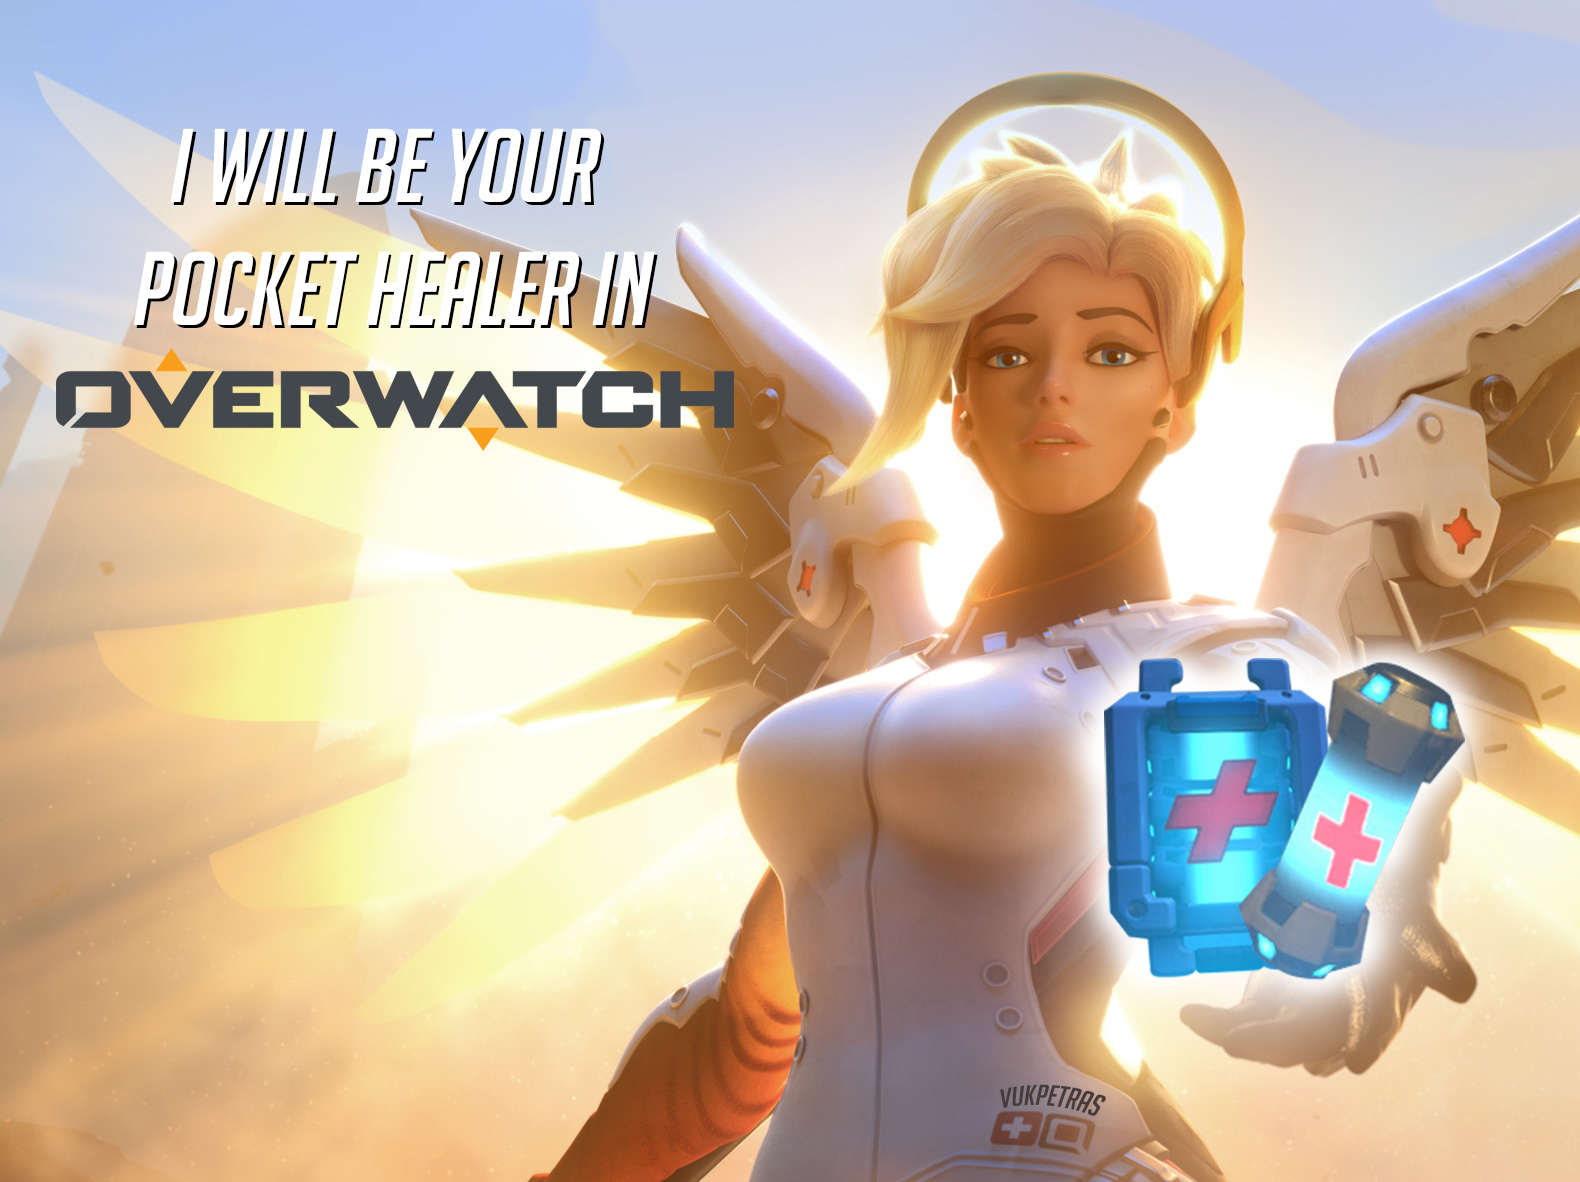 Be Your Pocket HEALER In Overwatch